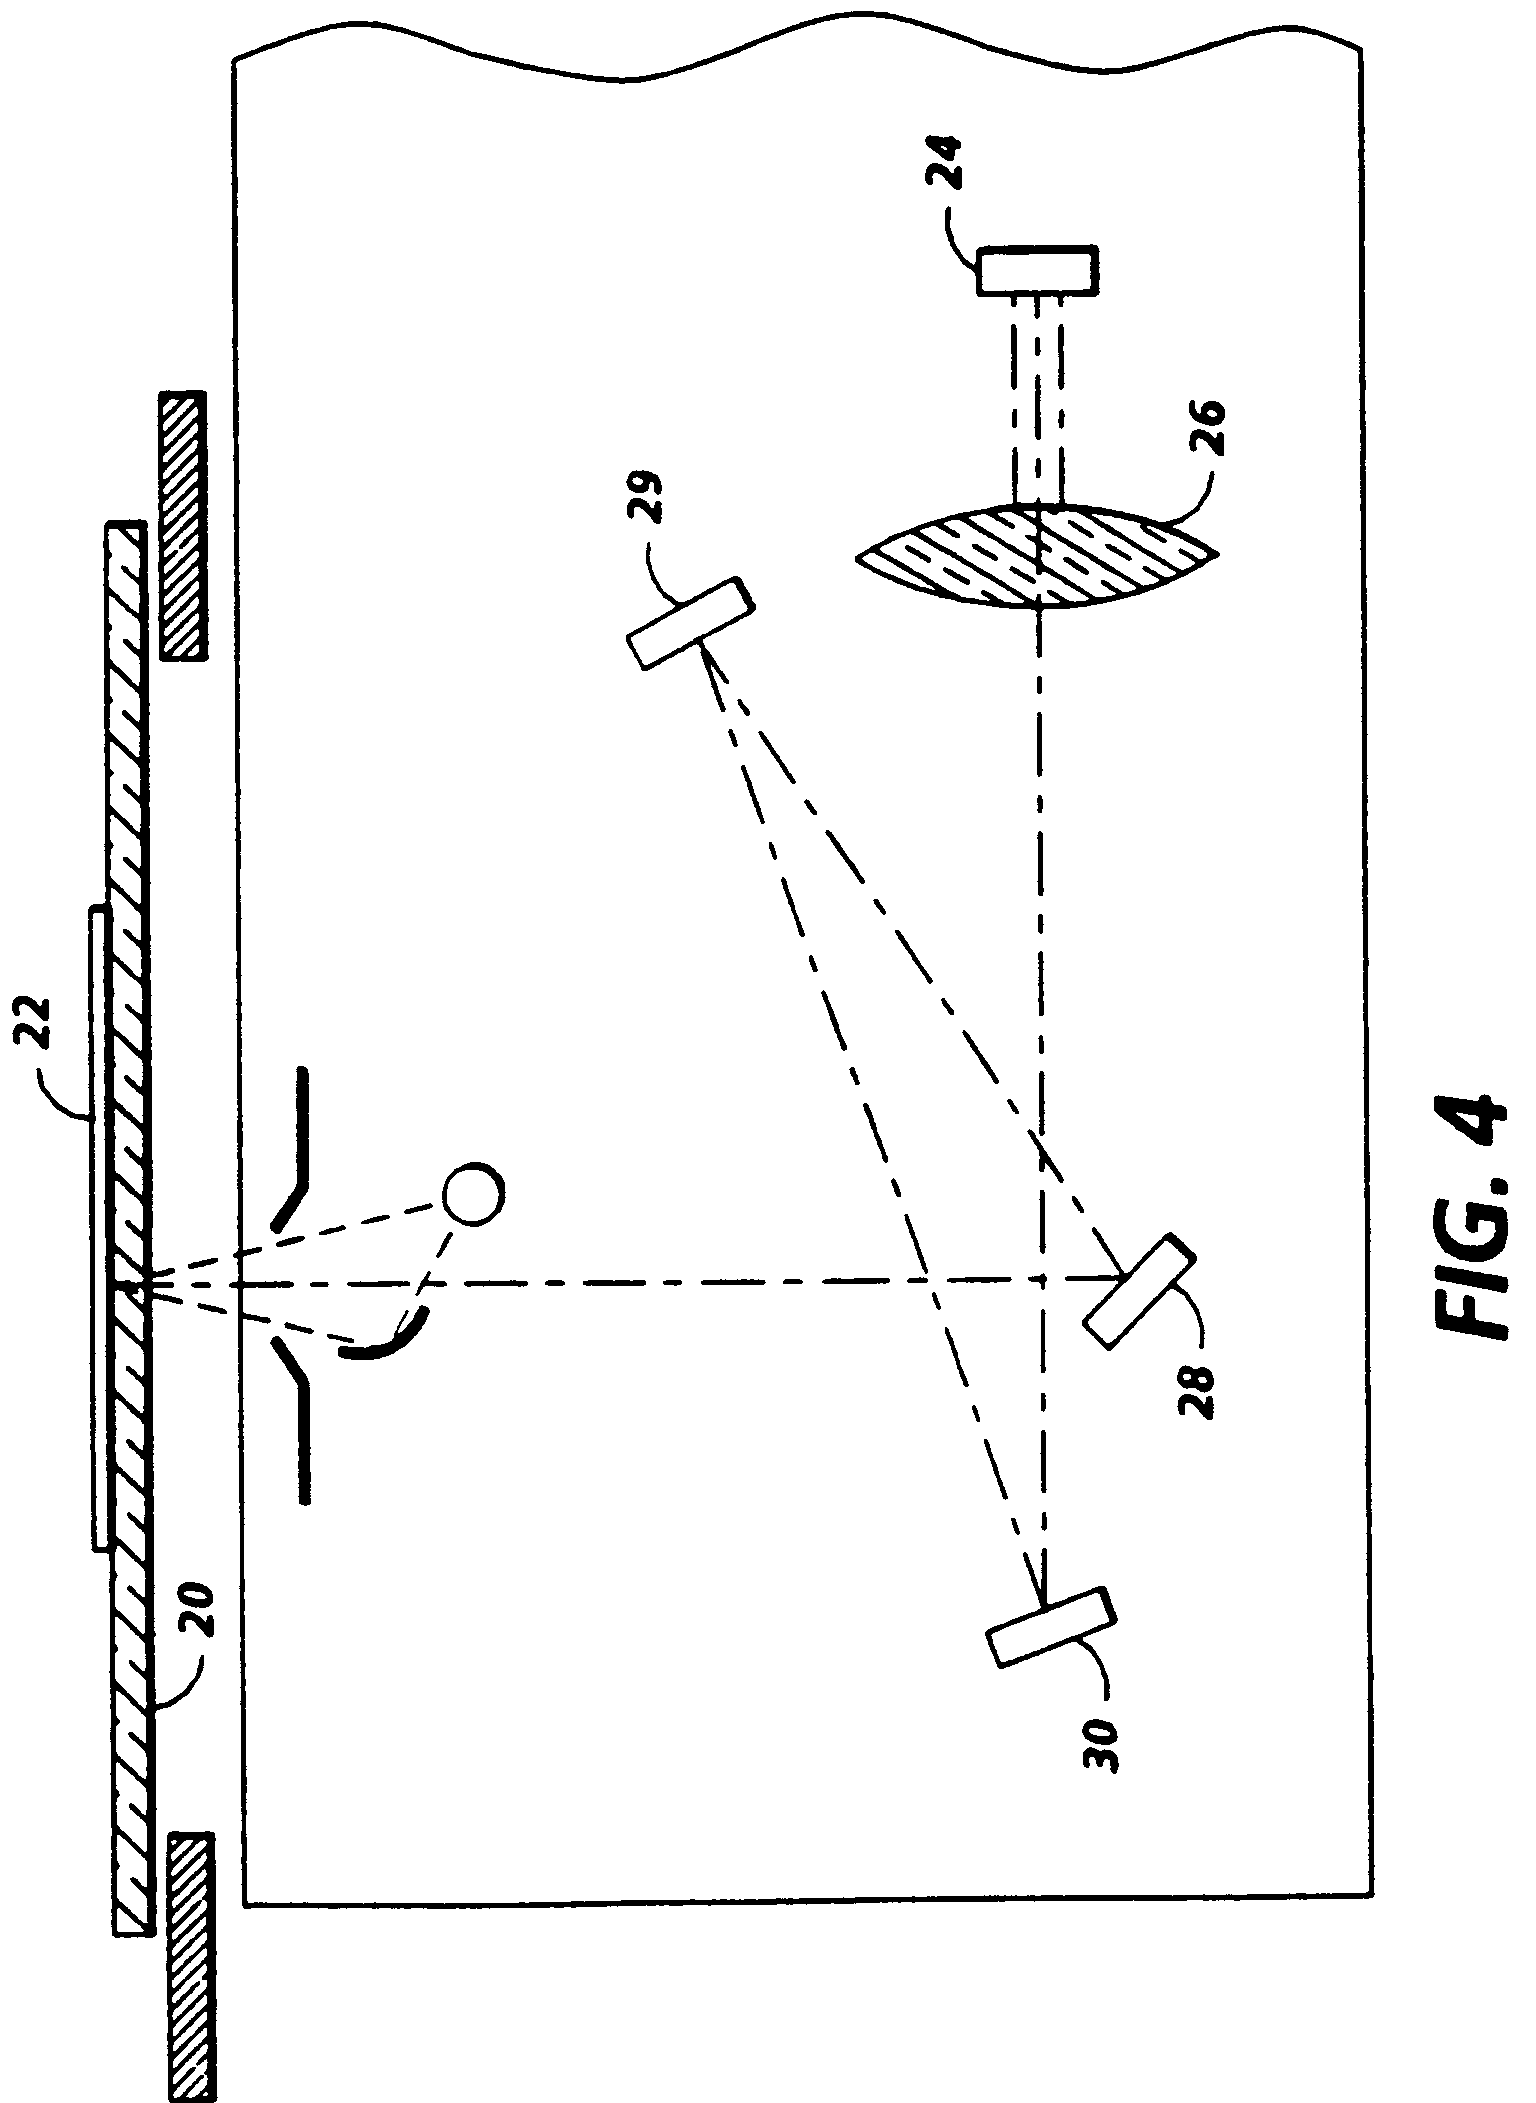 simplex and duplex methods In communications, a simplex communication link is one way only, and a duplex link goes in both directions an example of a simplex link is a satellite beaming a signal to a receiver dish where the communication only goes in one direction, from the origin to a receiver an example of a duplex link .